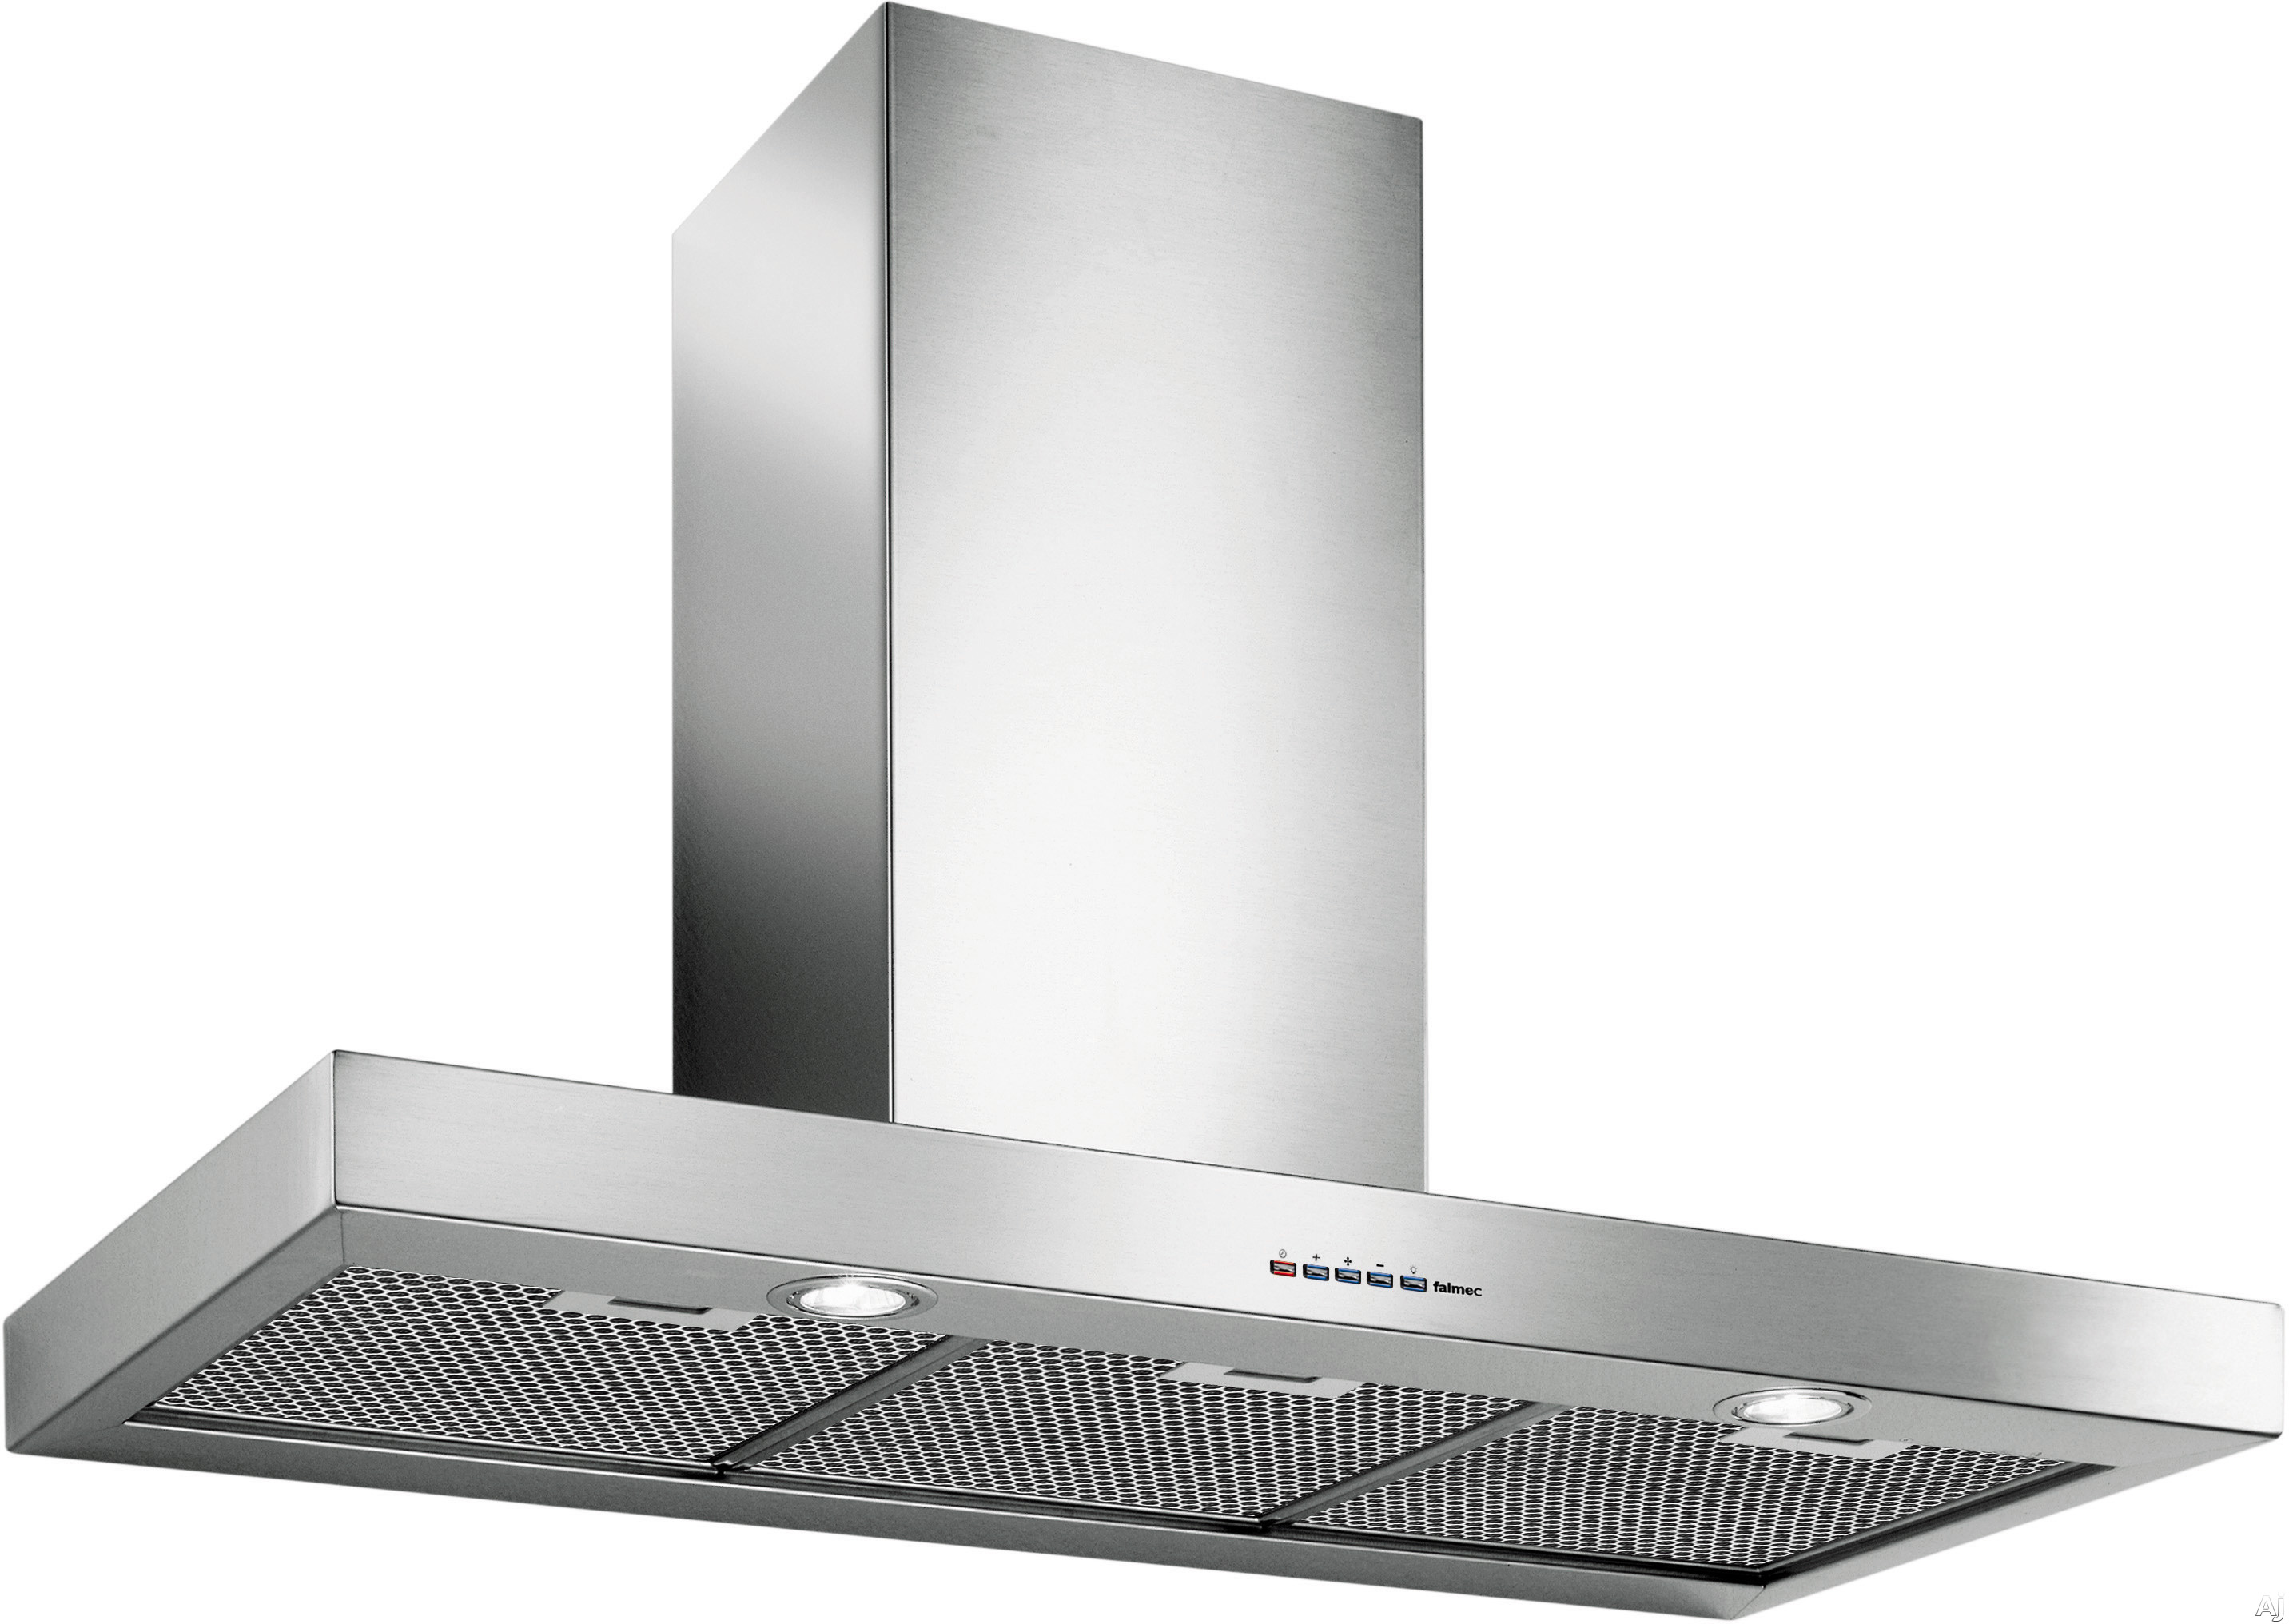 Futuro Futuro Positano Series WL48POSITANO 48 Inch Wall Mount Range Hood with 940 CFM Internal Blower, 4 Speed Electronic Controls, 2 Halogen Lights and Dishwasher Safe Filters: Stainless Steel: 48 Inch Width